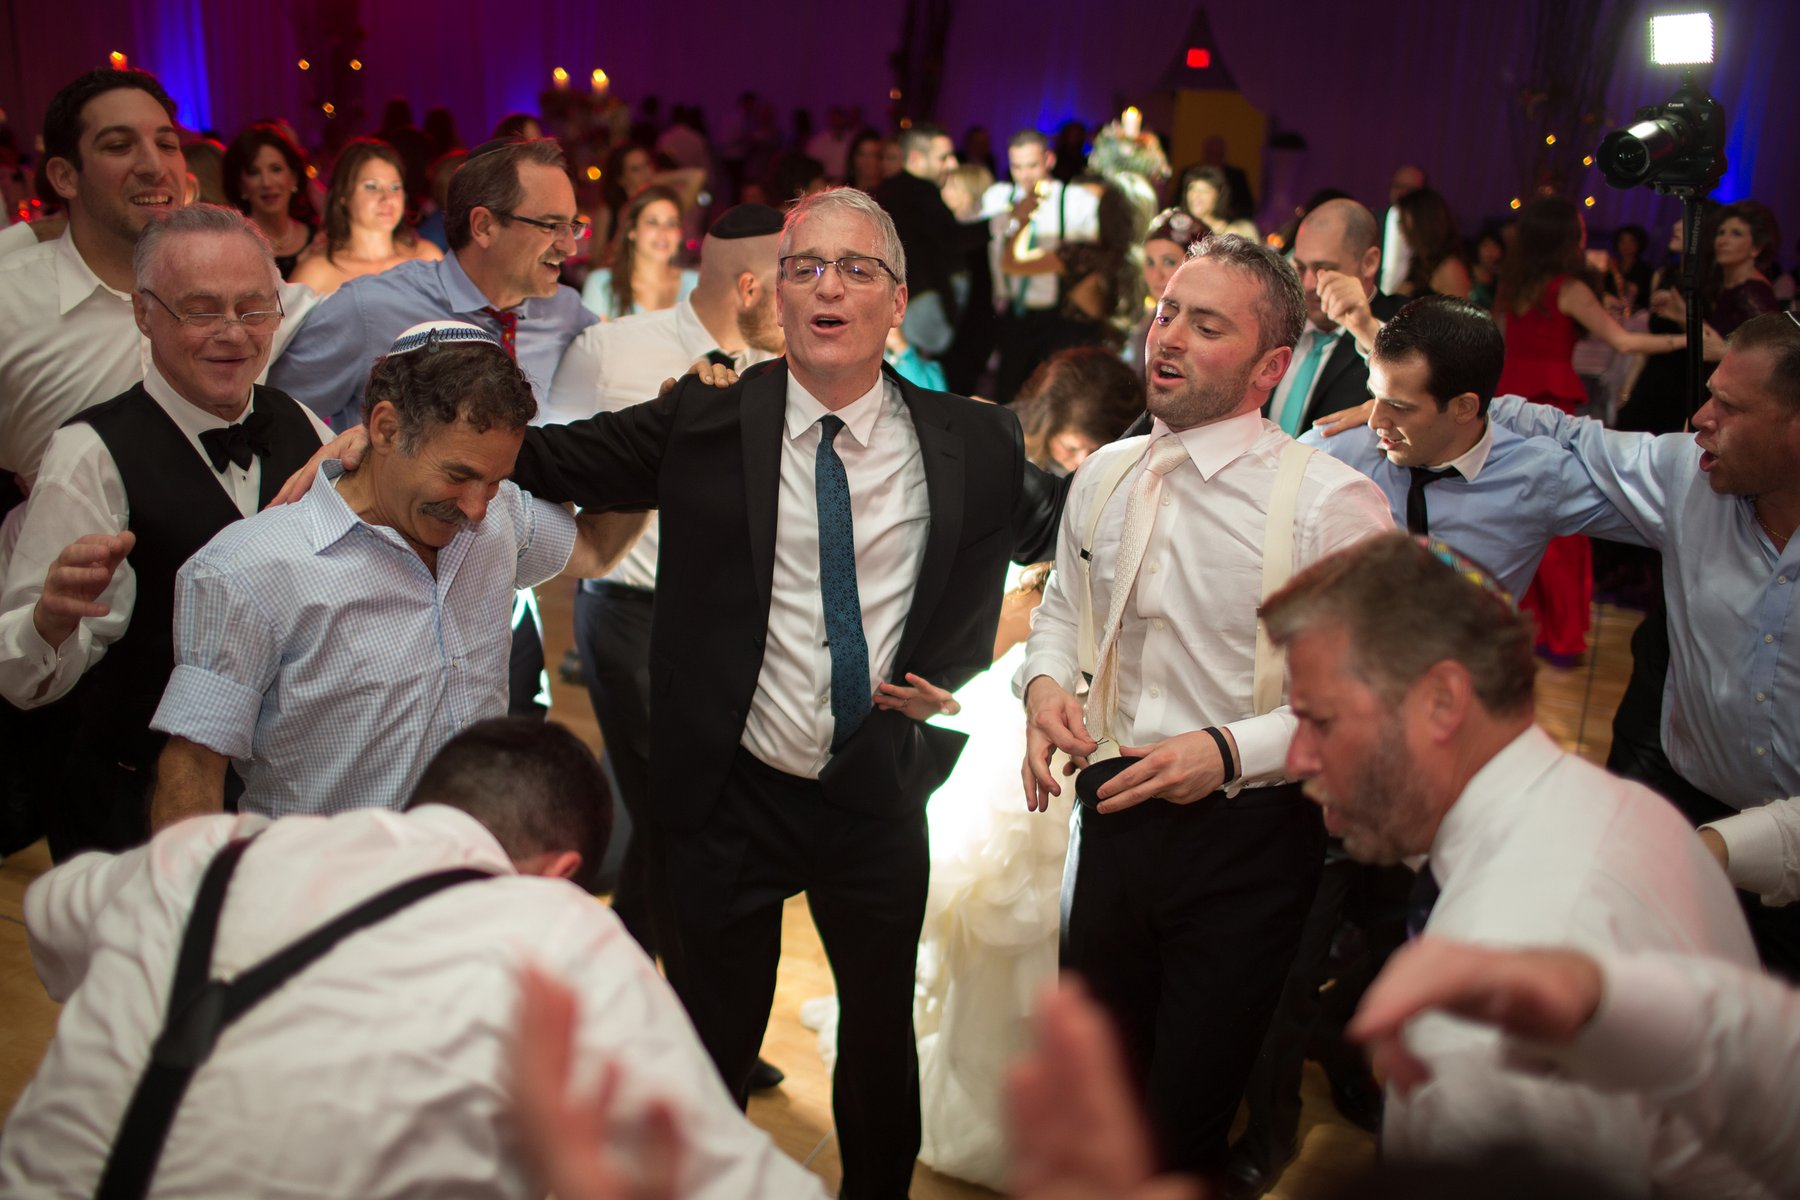 ortodox jewish wedding dancing